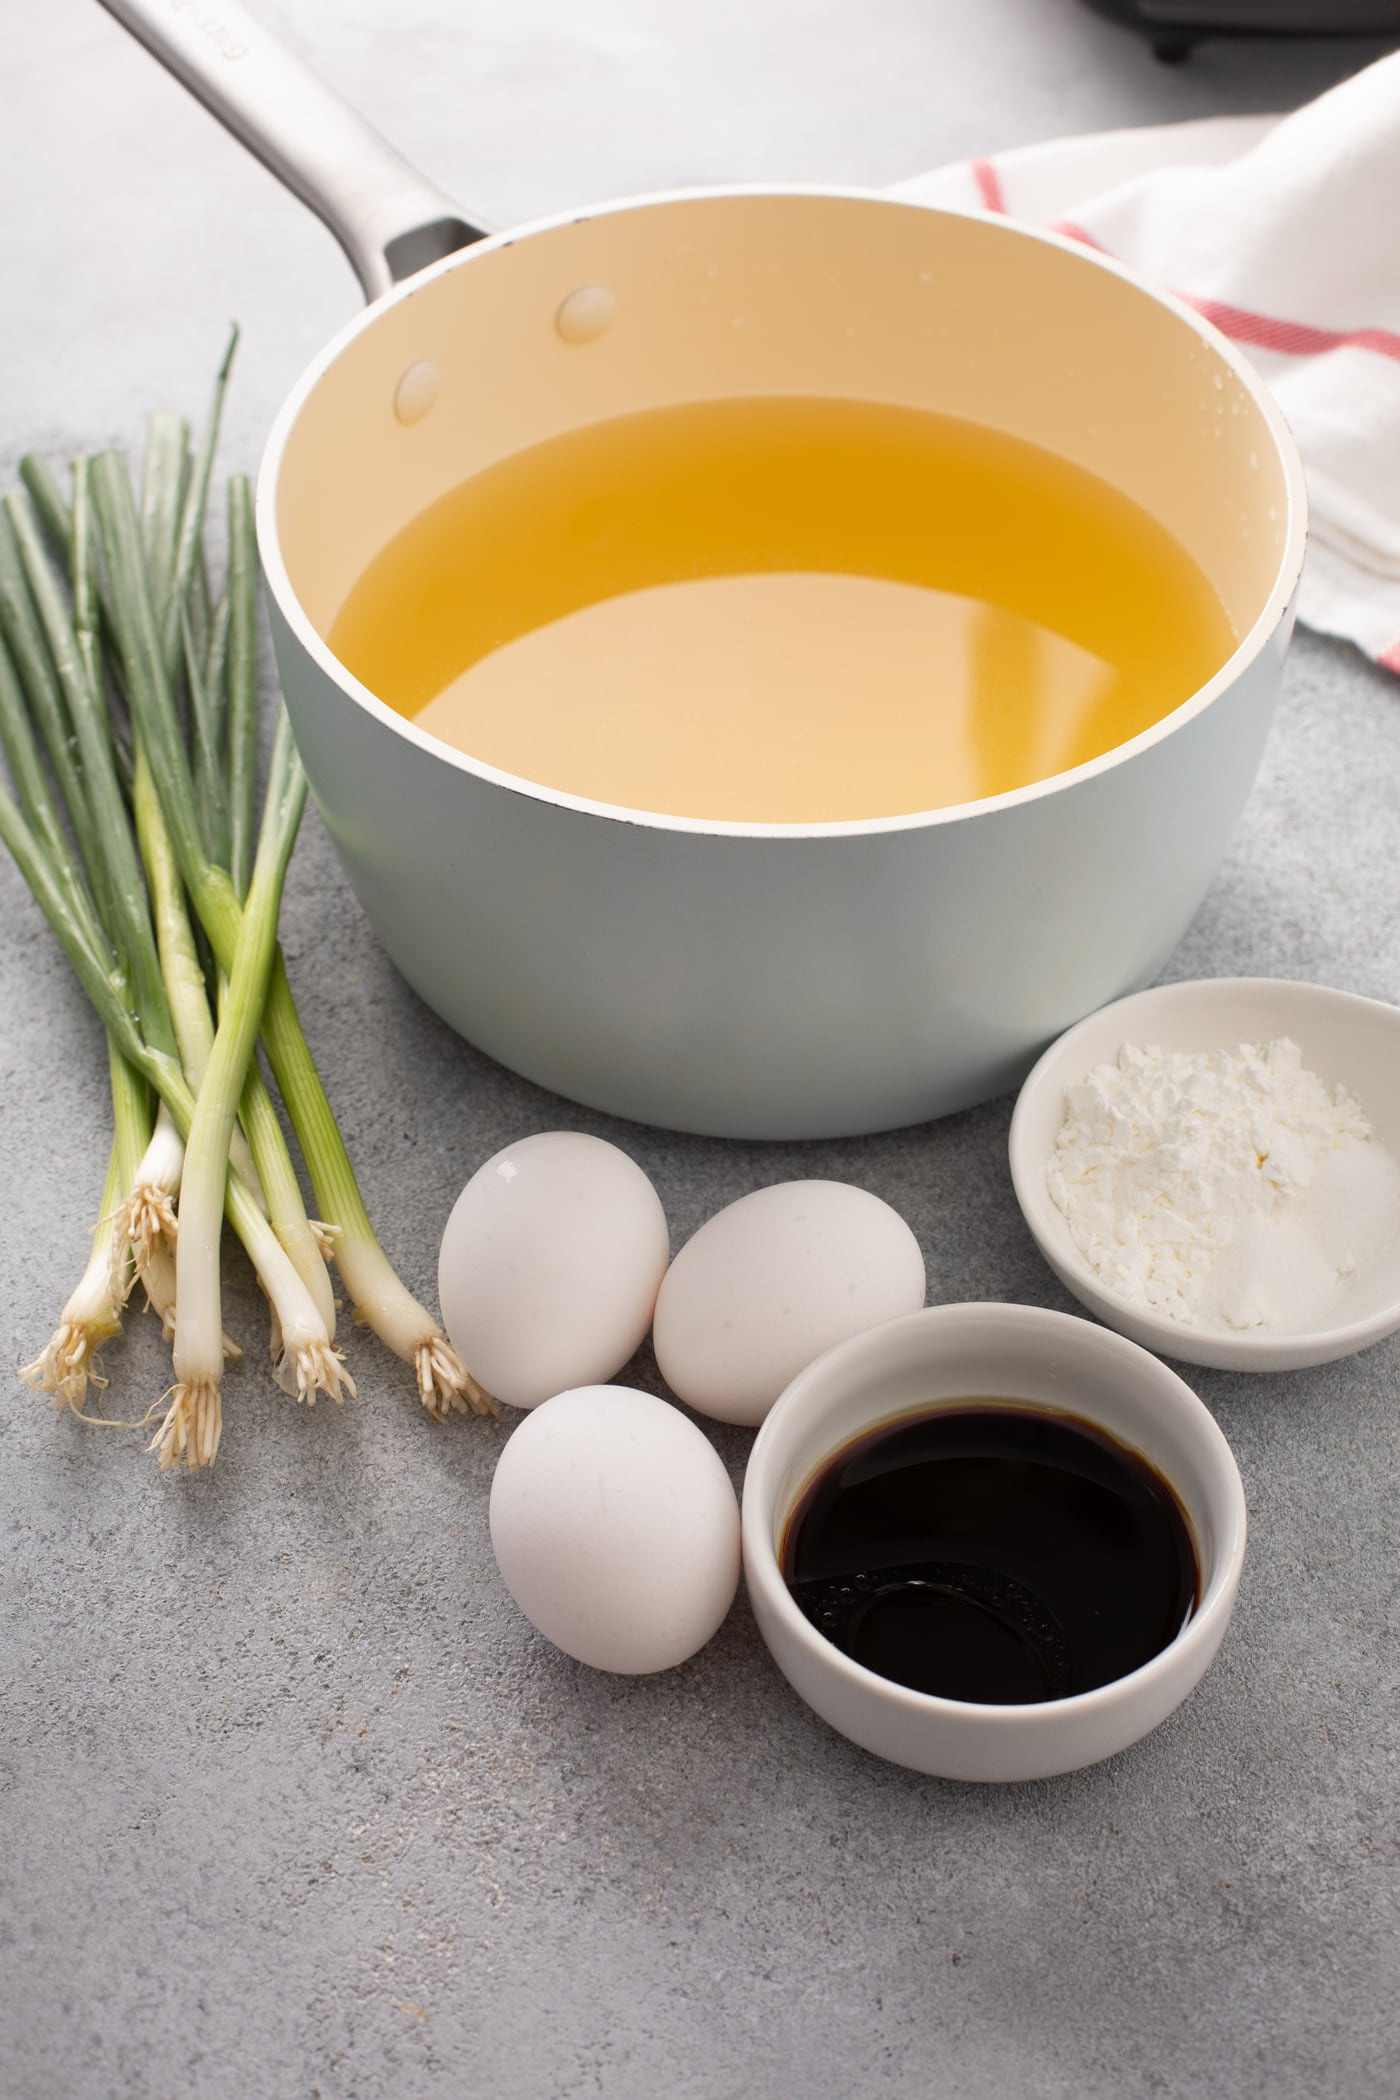 A table top with green onions, three whole eggs, soy sauce, a container of corn starch and a bowl of chicken broth.